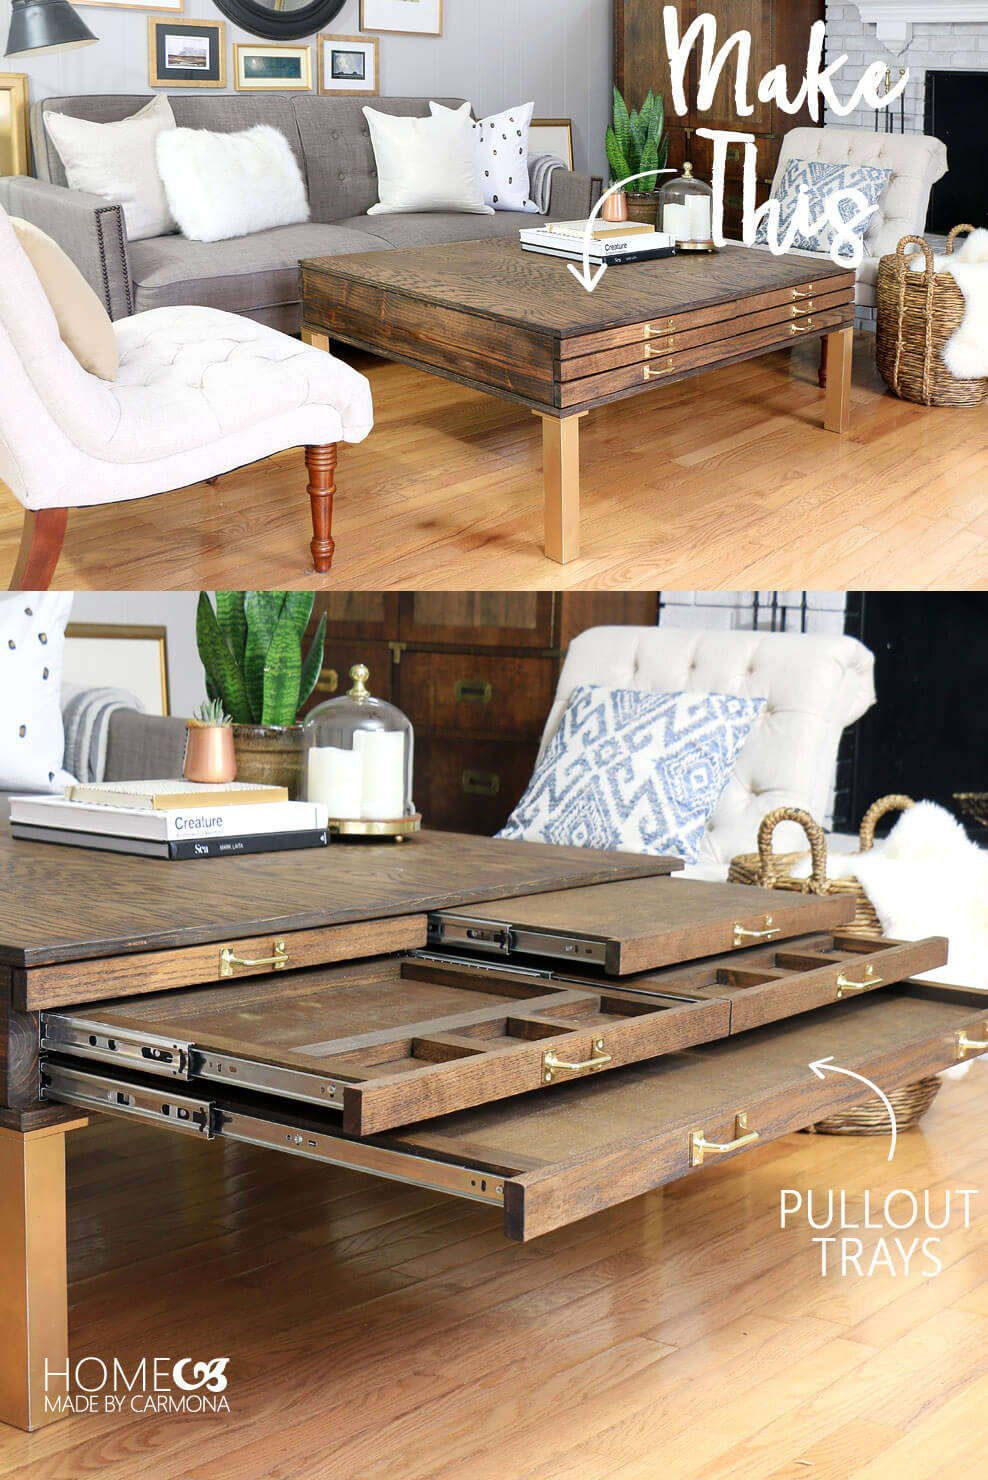 Best ideas about Jigsaw Table DIY . Save or Pin DIY Coffee Table With Pullouts Home Made By Carmona Now.